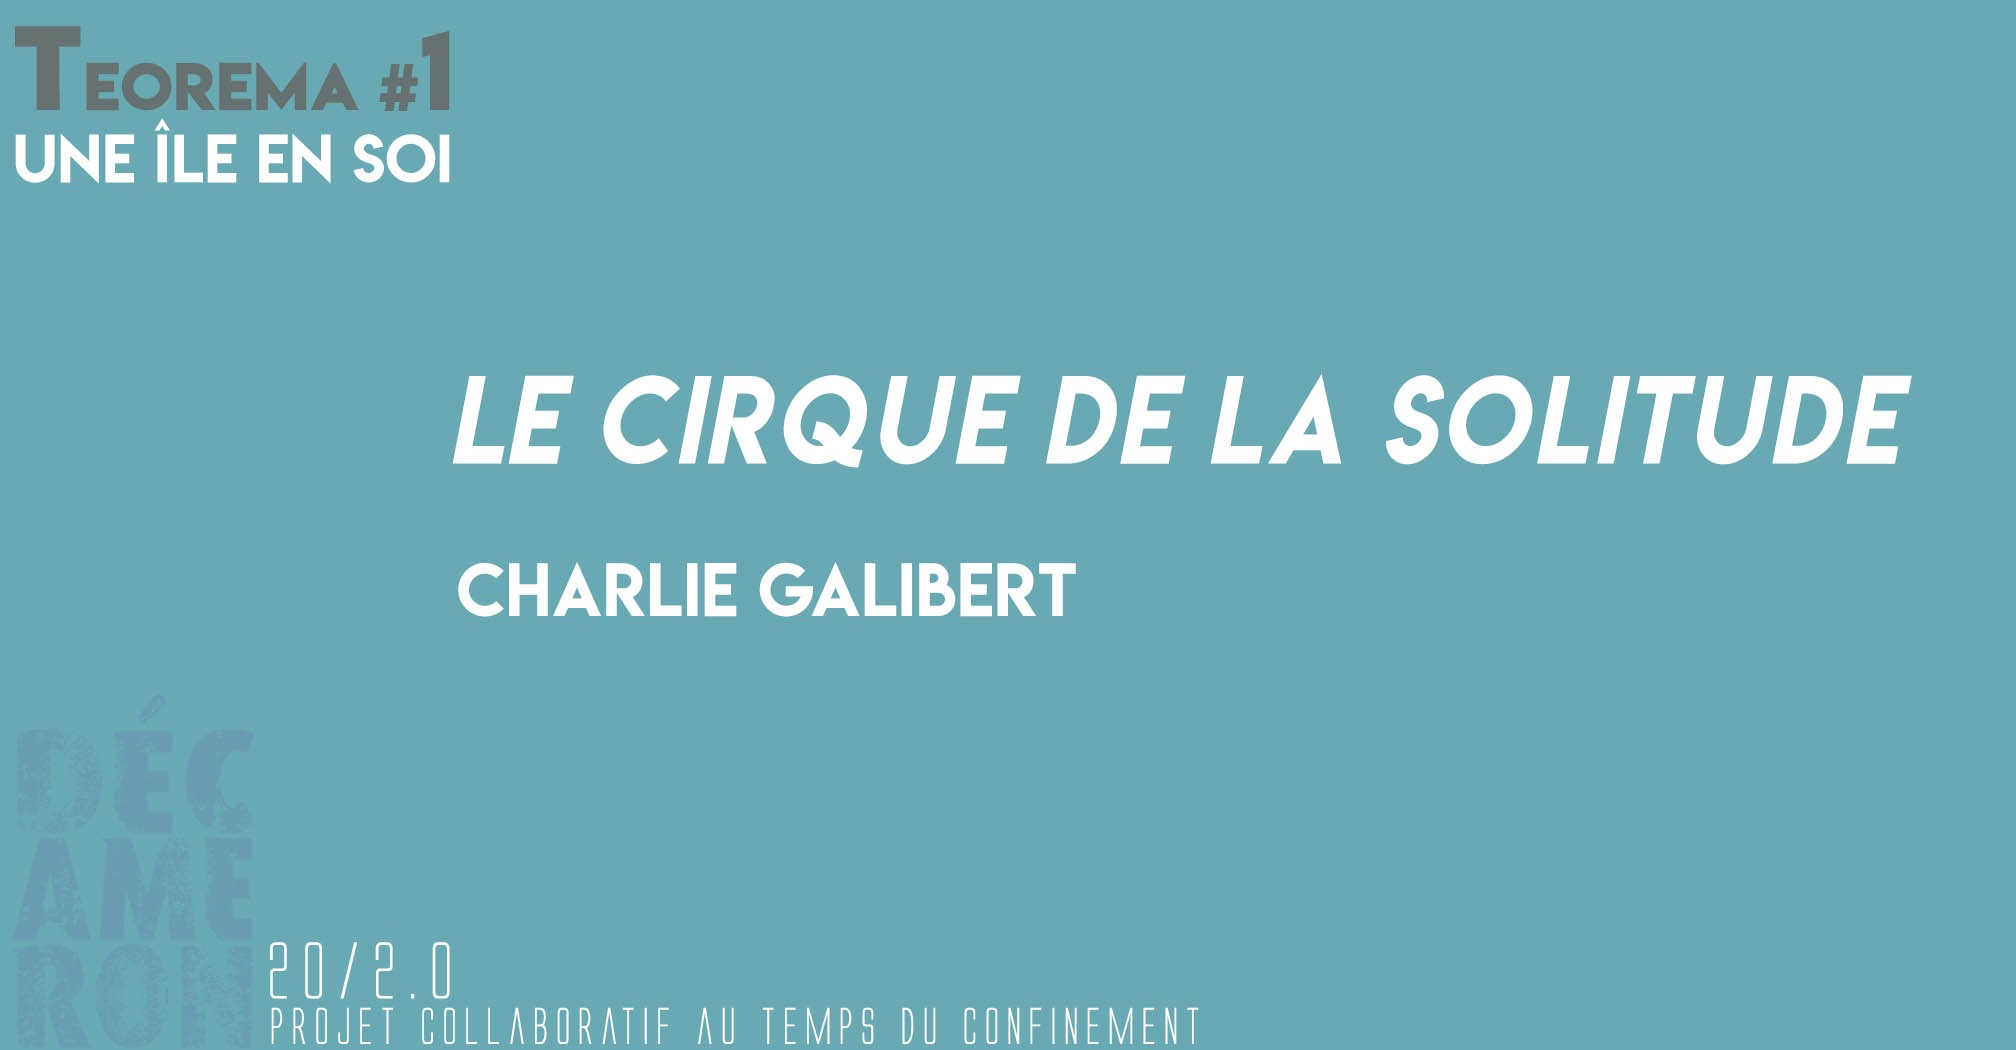 Le Cirque de La Solitude - Charlie Galibert